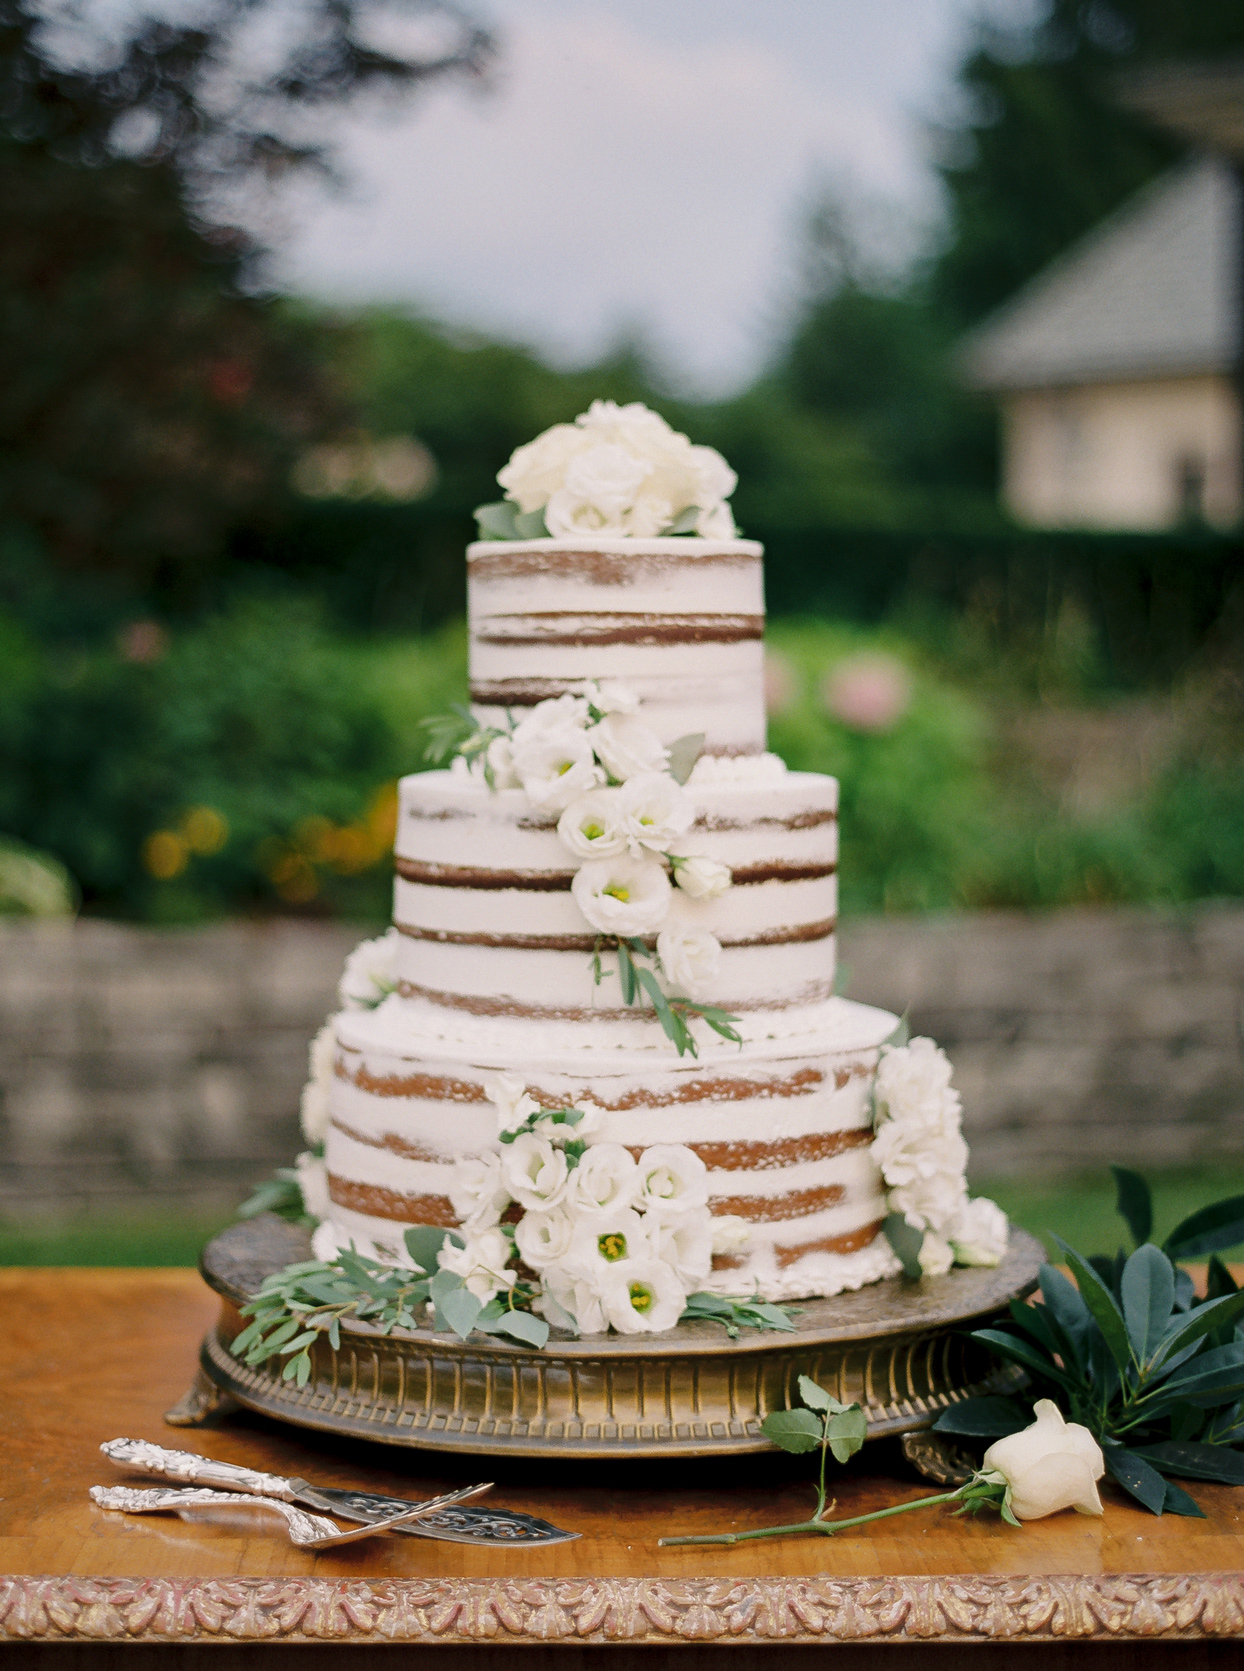 three-tiered wedding cake embellished with white flowers